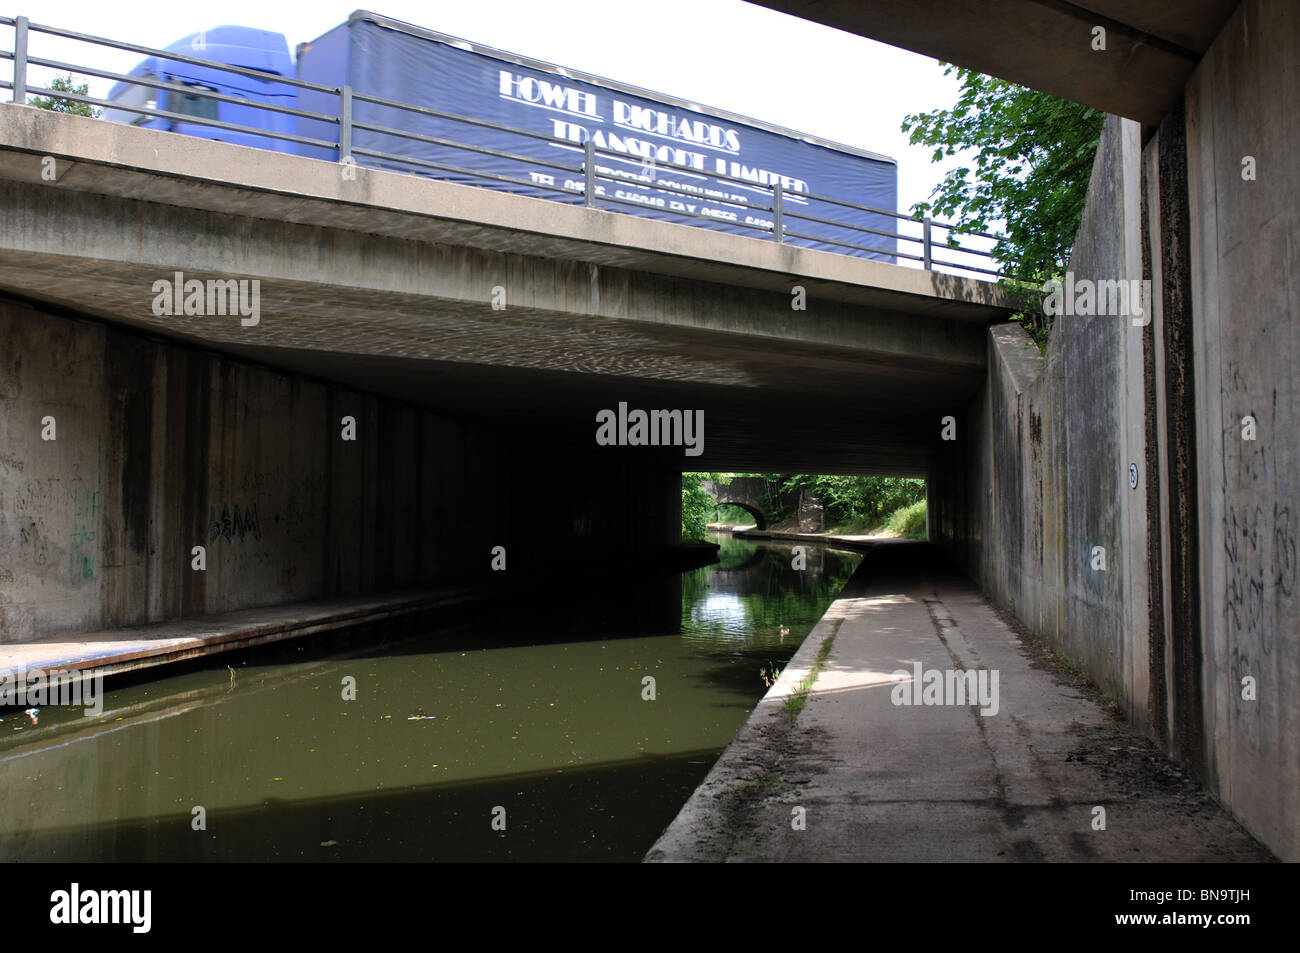 M42 motorway crossing Grand Union Canal at Copt Heath, West Midlands, England, UK Stock Photo